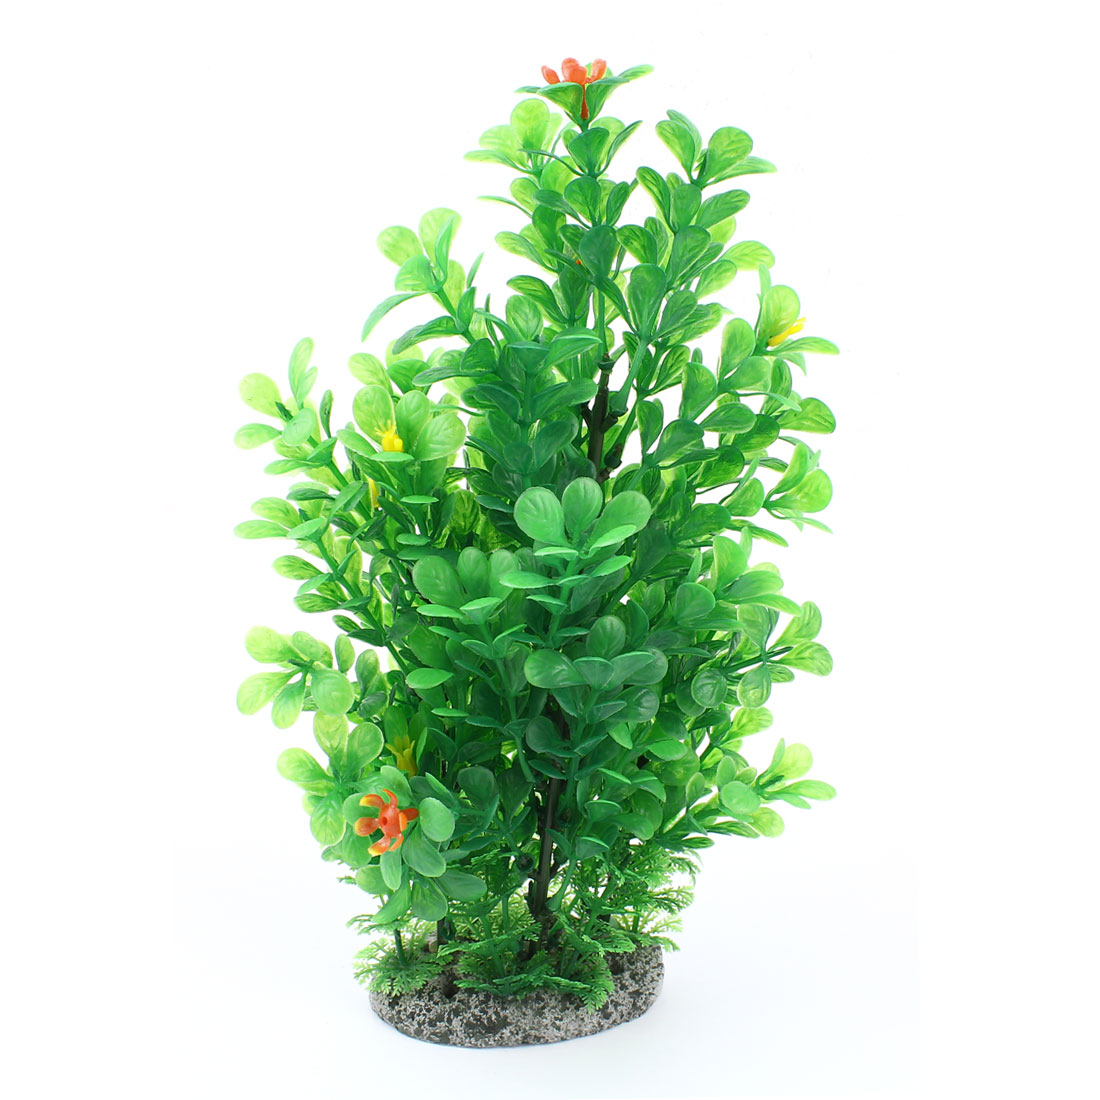 "Fish Tank Accent Green Artificial Flowers Tree Water Plant 12"" High"